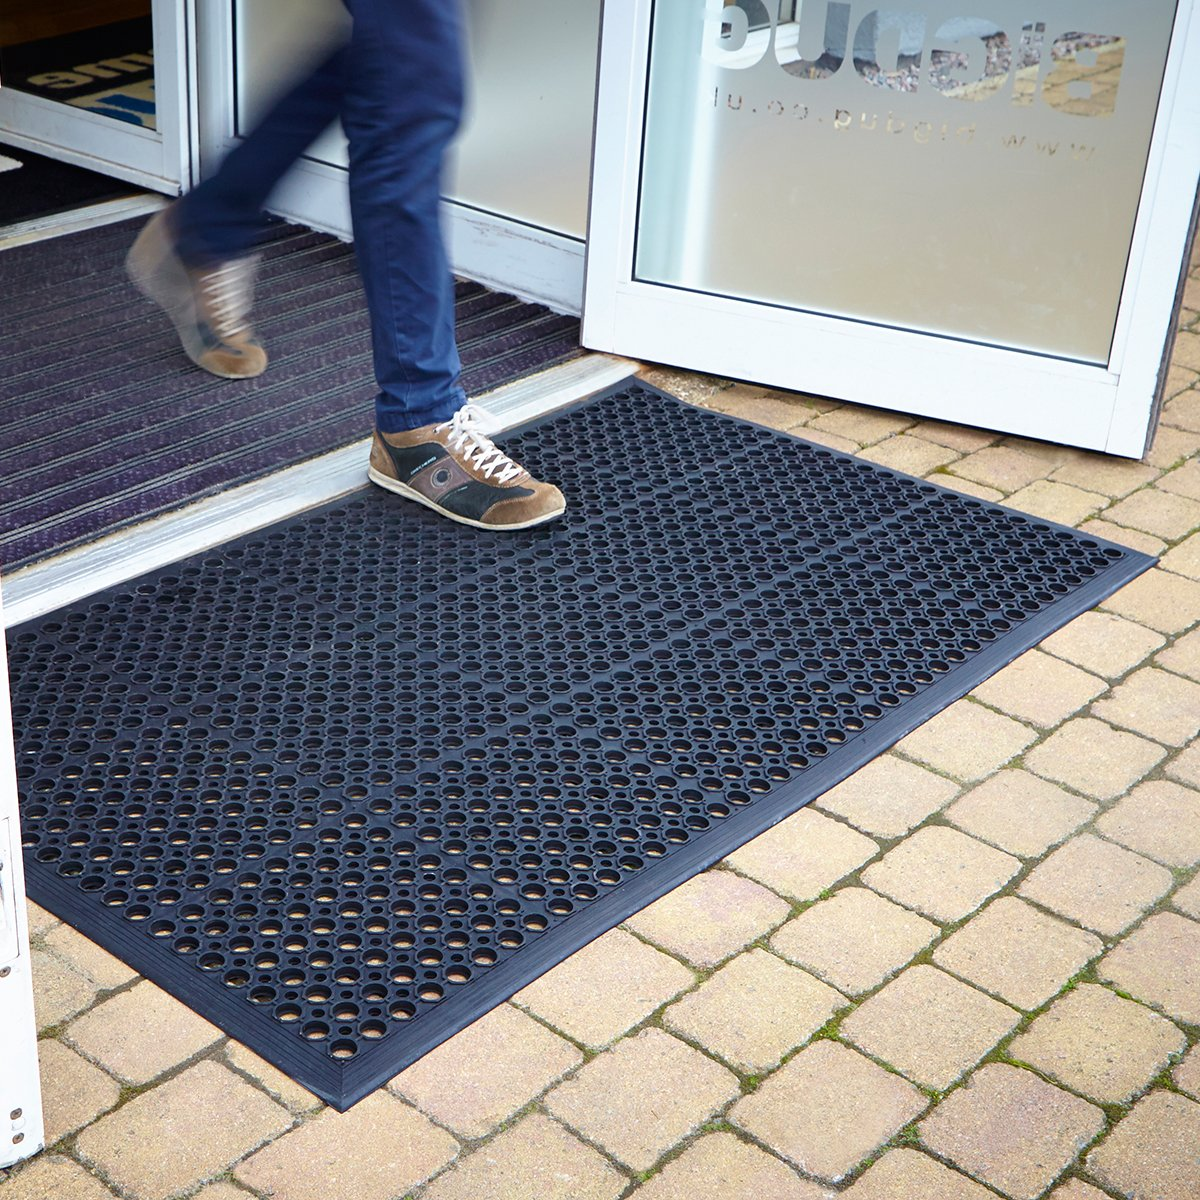 Large Outdoor Rubber Entrance Mats Anti Slip Drainage Door Mat Flooring   3  Sizes Available  0 9m x1 5m  by BiGDUG  Amazon co uk  Kitchen   HomeLarge Outdoor Rubber Entrance Mats Anti Slip Drainage Door Mat  . Outdoor Rubber Tiles Uk. Home Design Ideas